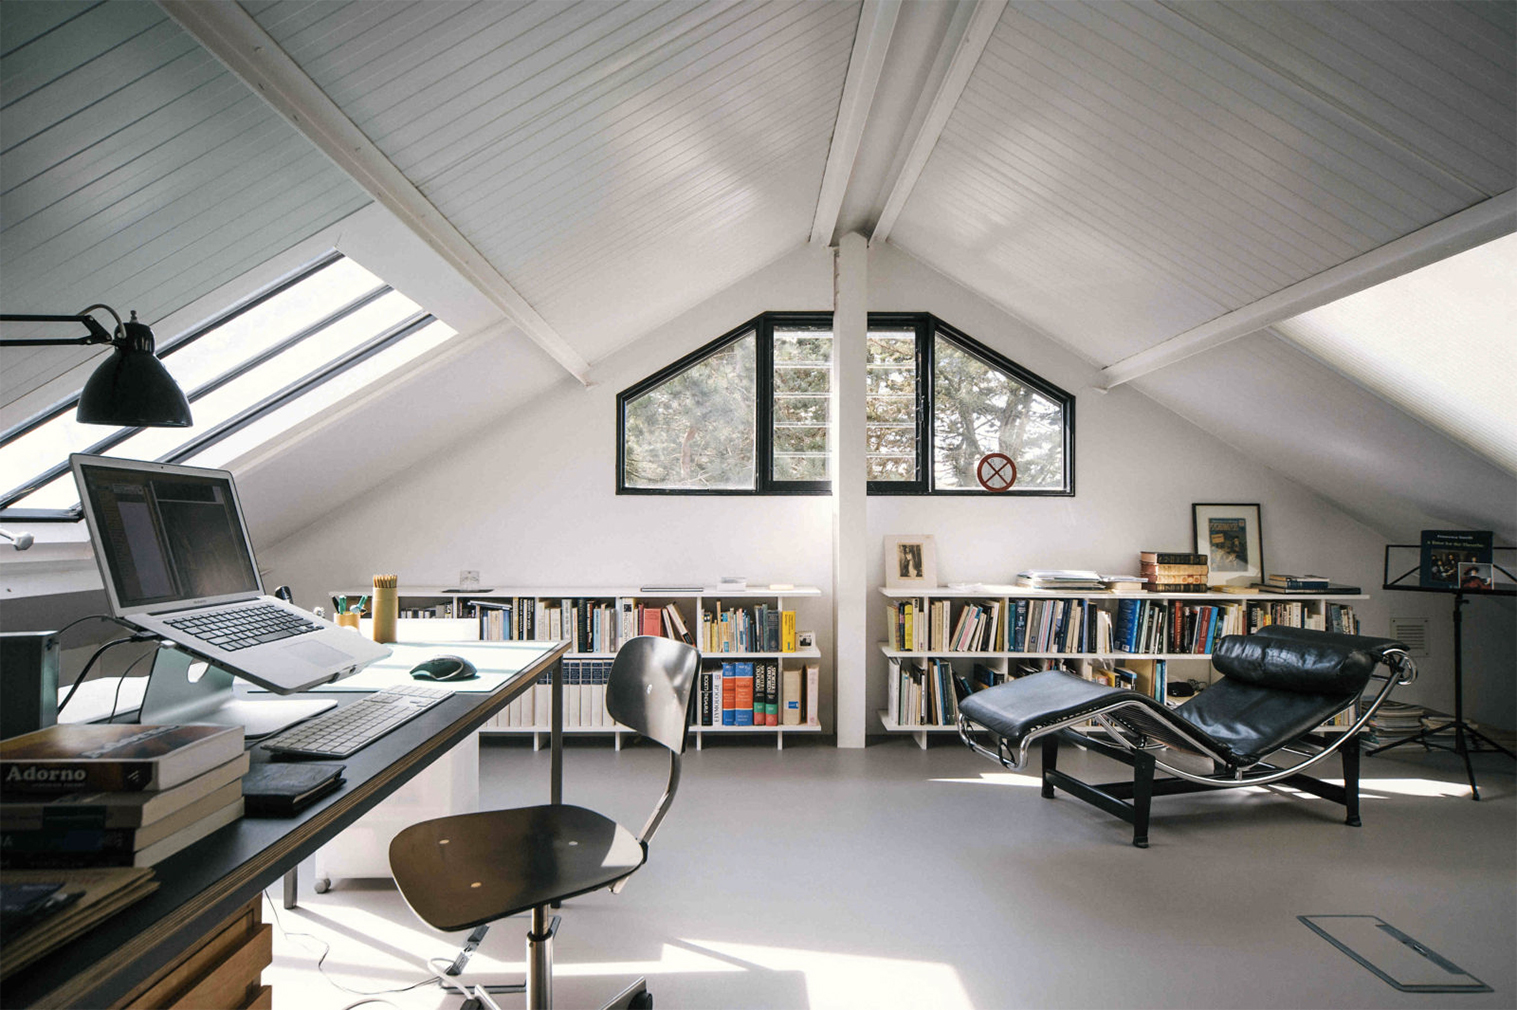 Somerset's Provender Mill is a live/work space in the heart of Bruton